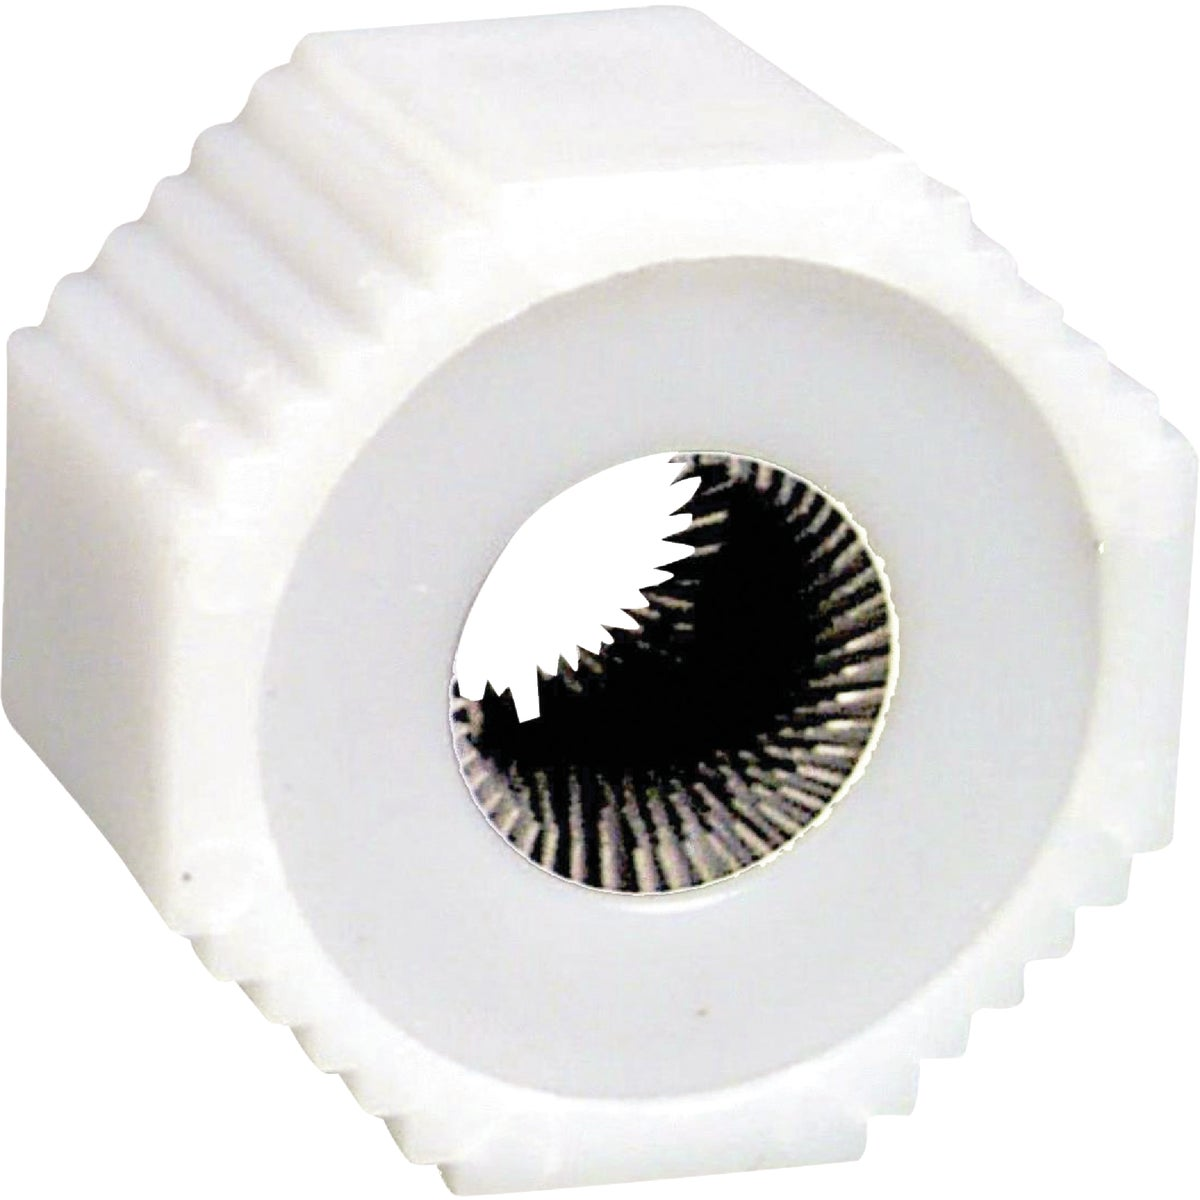 "1/2"" TUBE BRUSH - 092433 by Wm H Harvey Co"